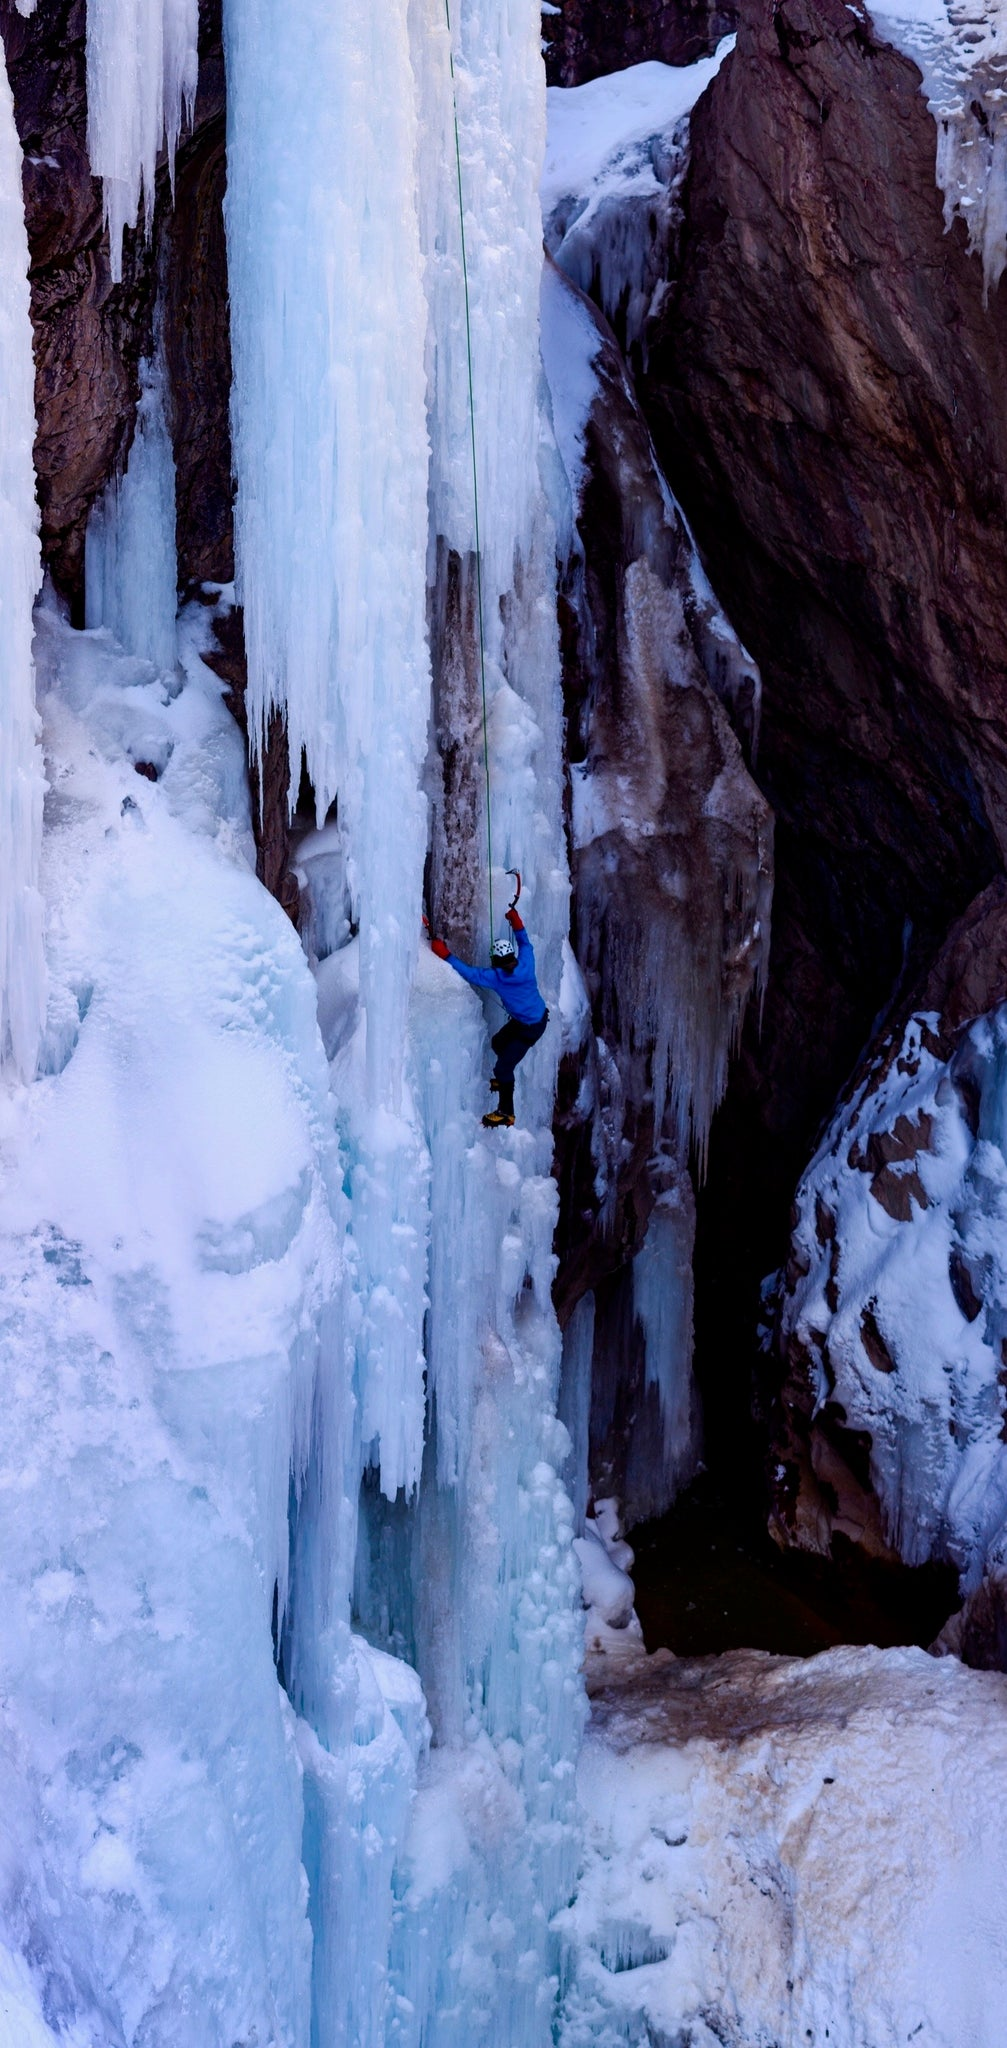 Monday by Mateo: The Ouray Ice Festival